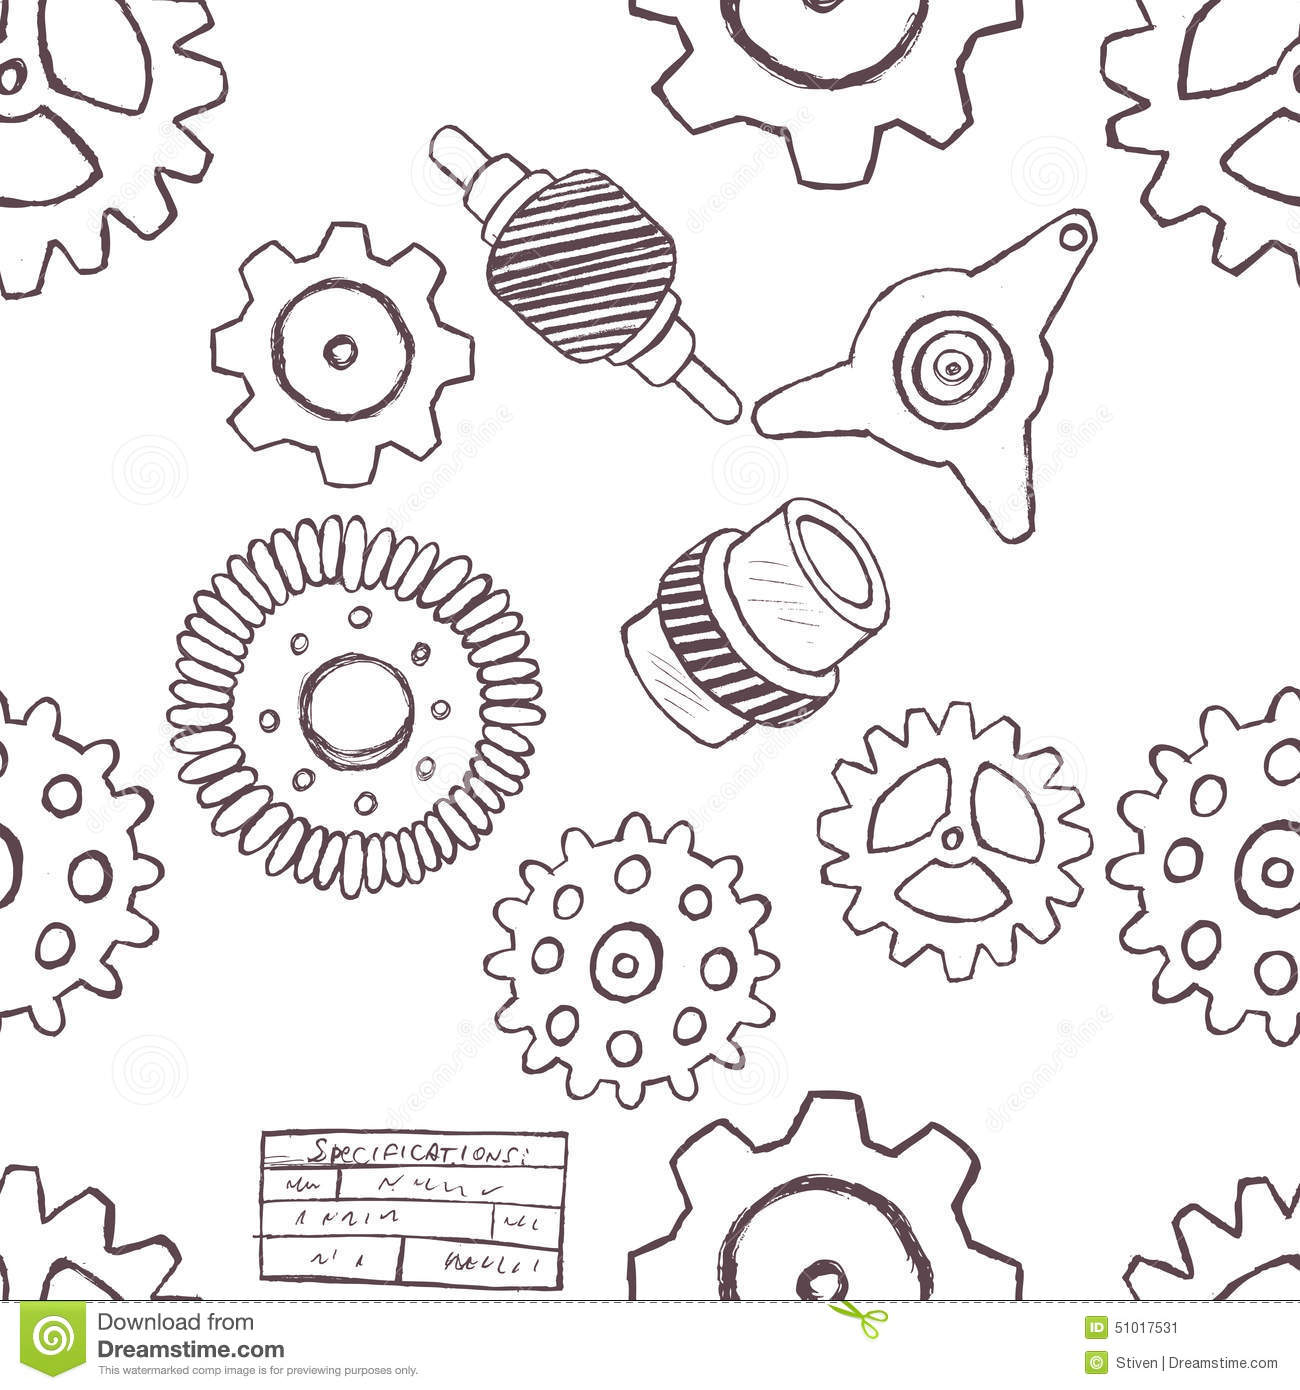 28553 H together with Doe mechanical science web educational textbook solar hydrogen fuel cells furthermore 20 Awesome Things Color Fun Kids likewise Autocad Drawing Test also 396457573421375593. on drawing of gears working